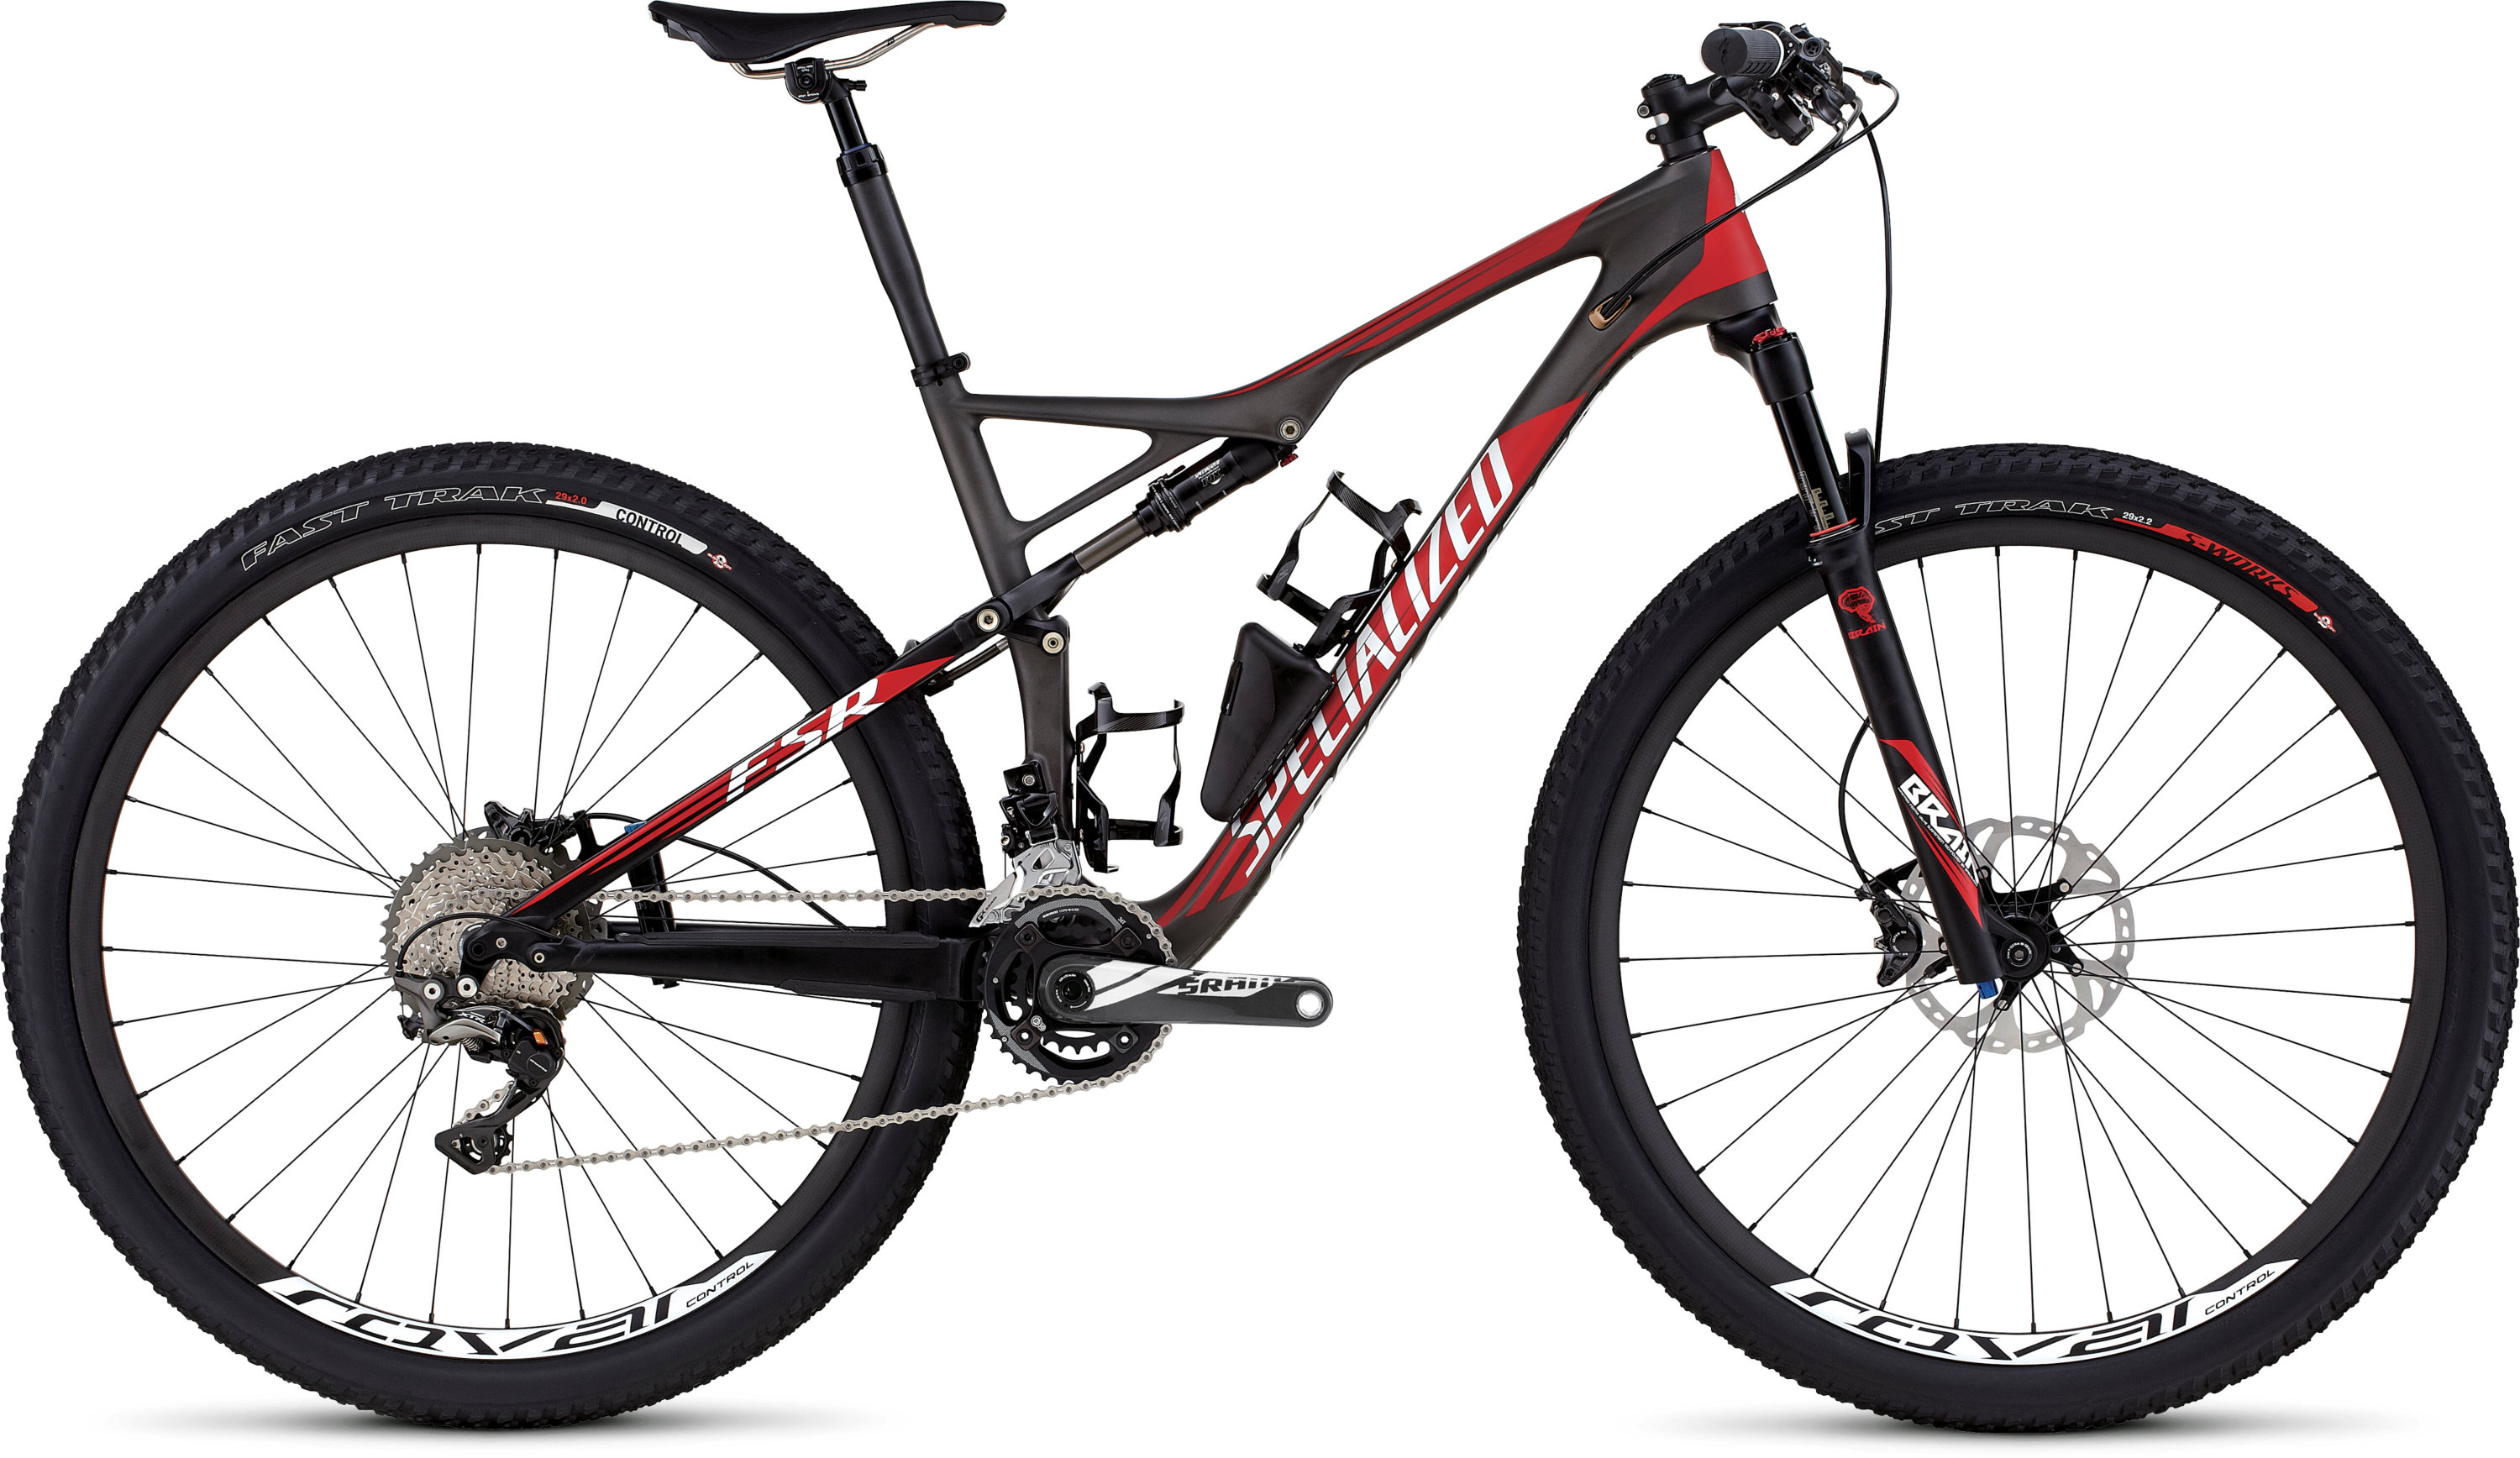 SPECIALIZED EPIC FSR EXPERT CARBON 29 CHARTNTCARB/RED/WHT S - schneider-sports